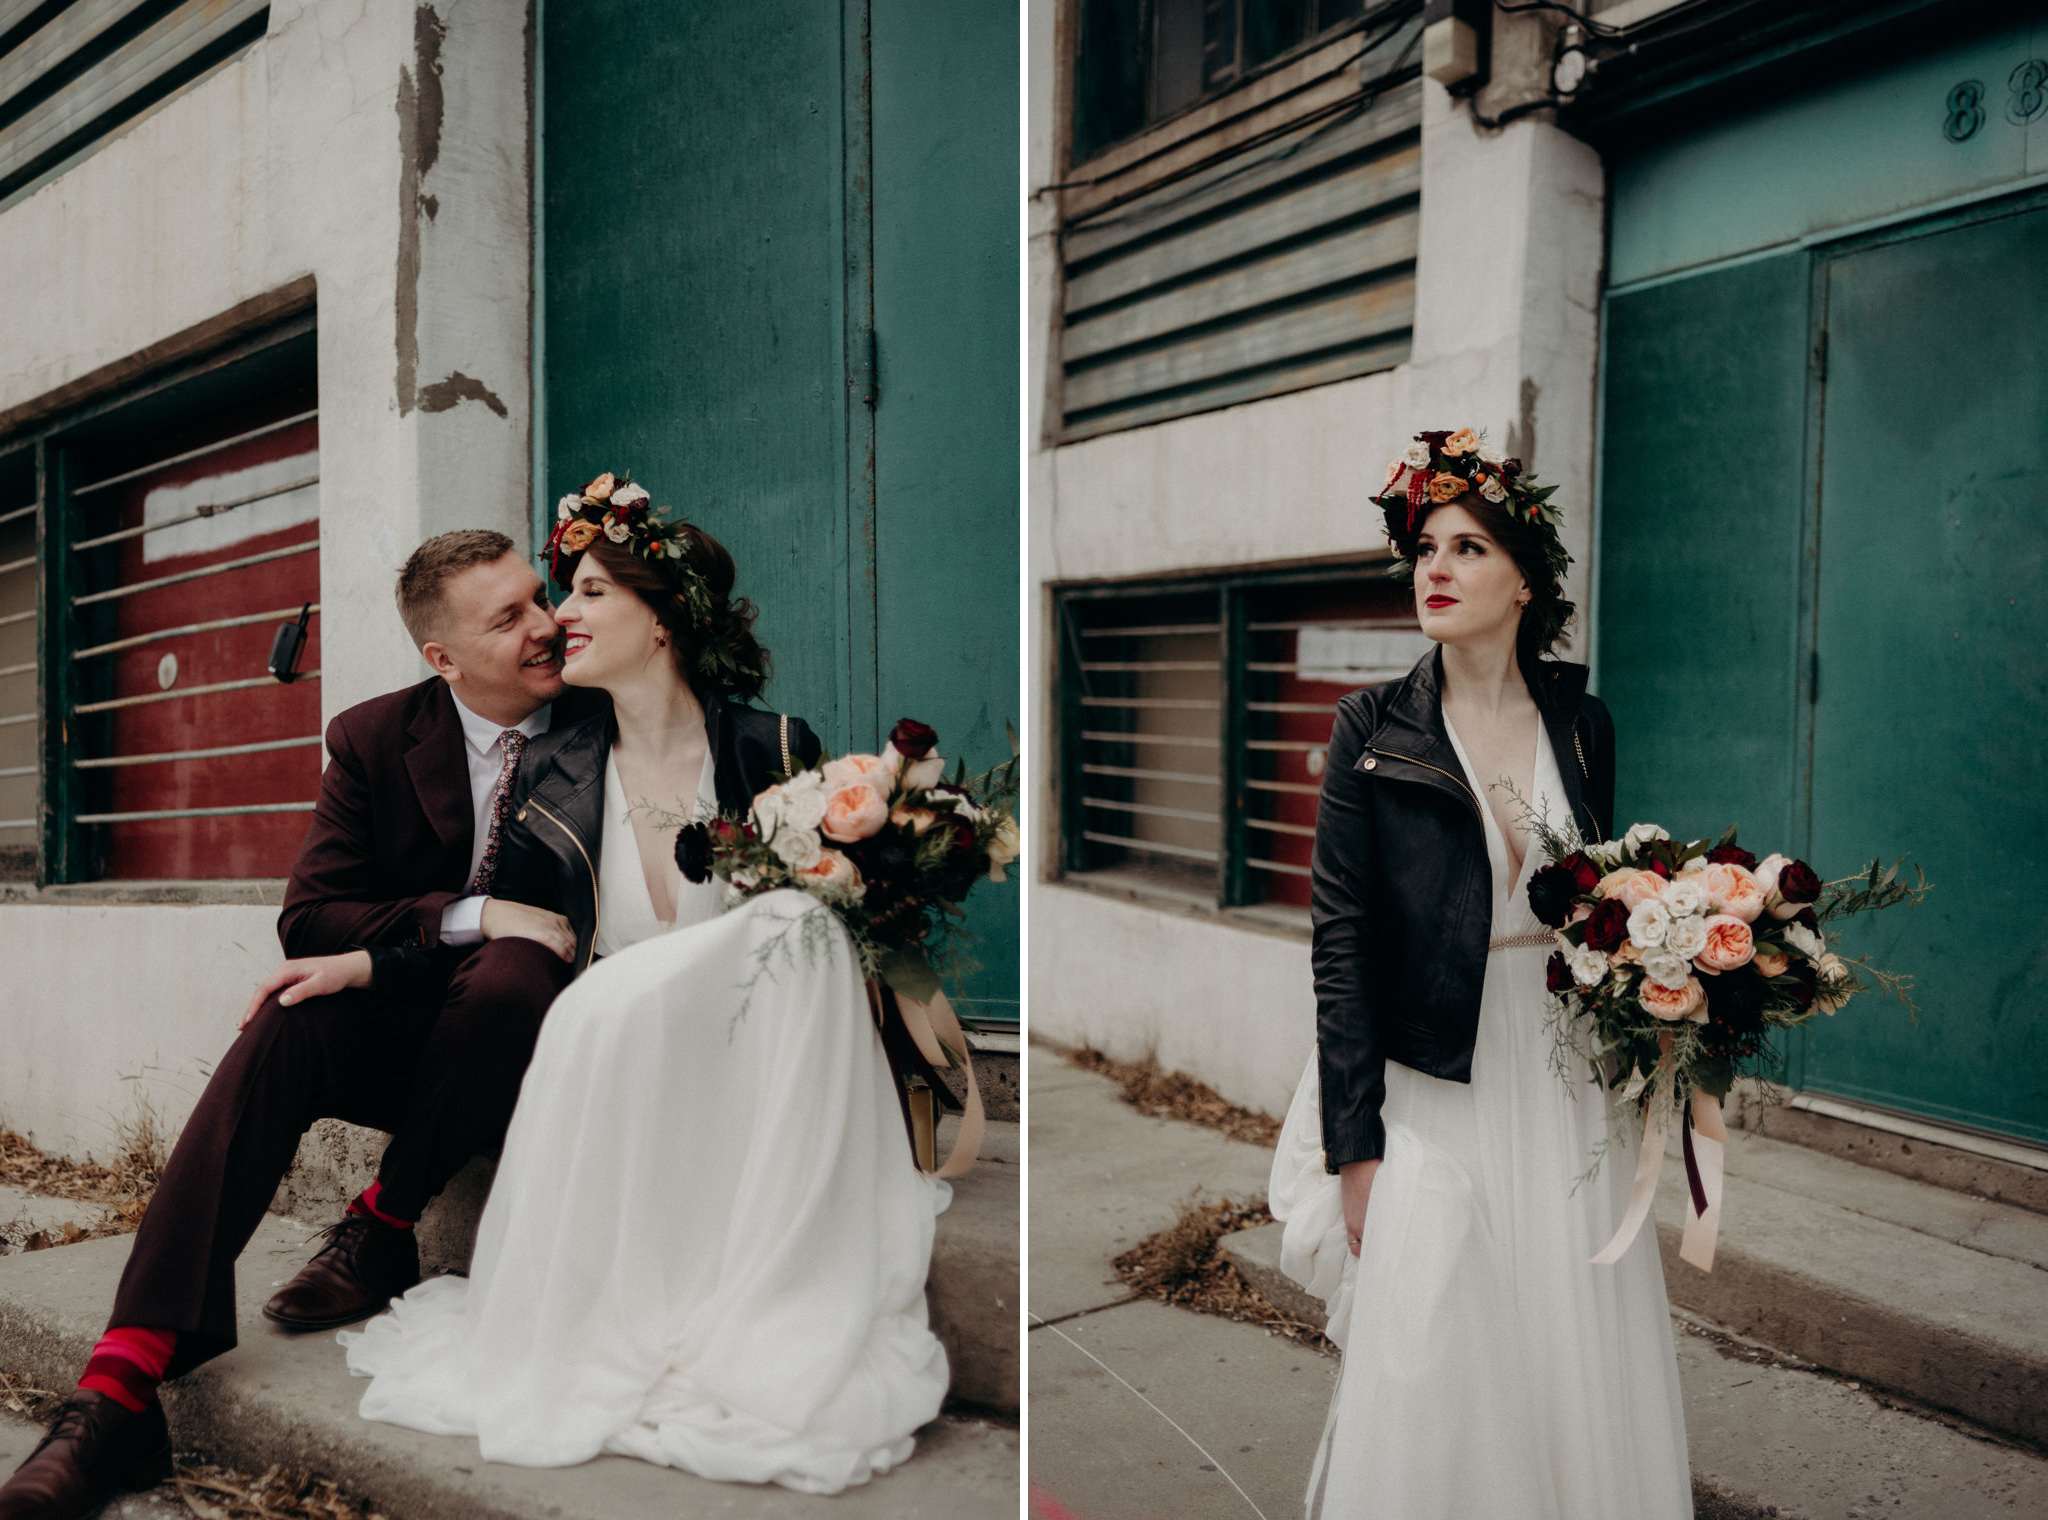 hip wedding couple standing in front of old building, bride wearing large floral crown